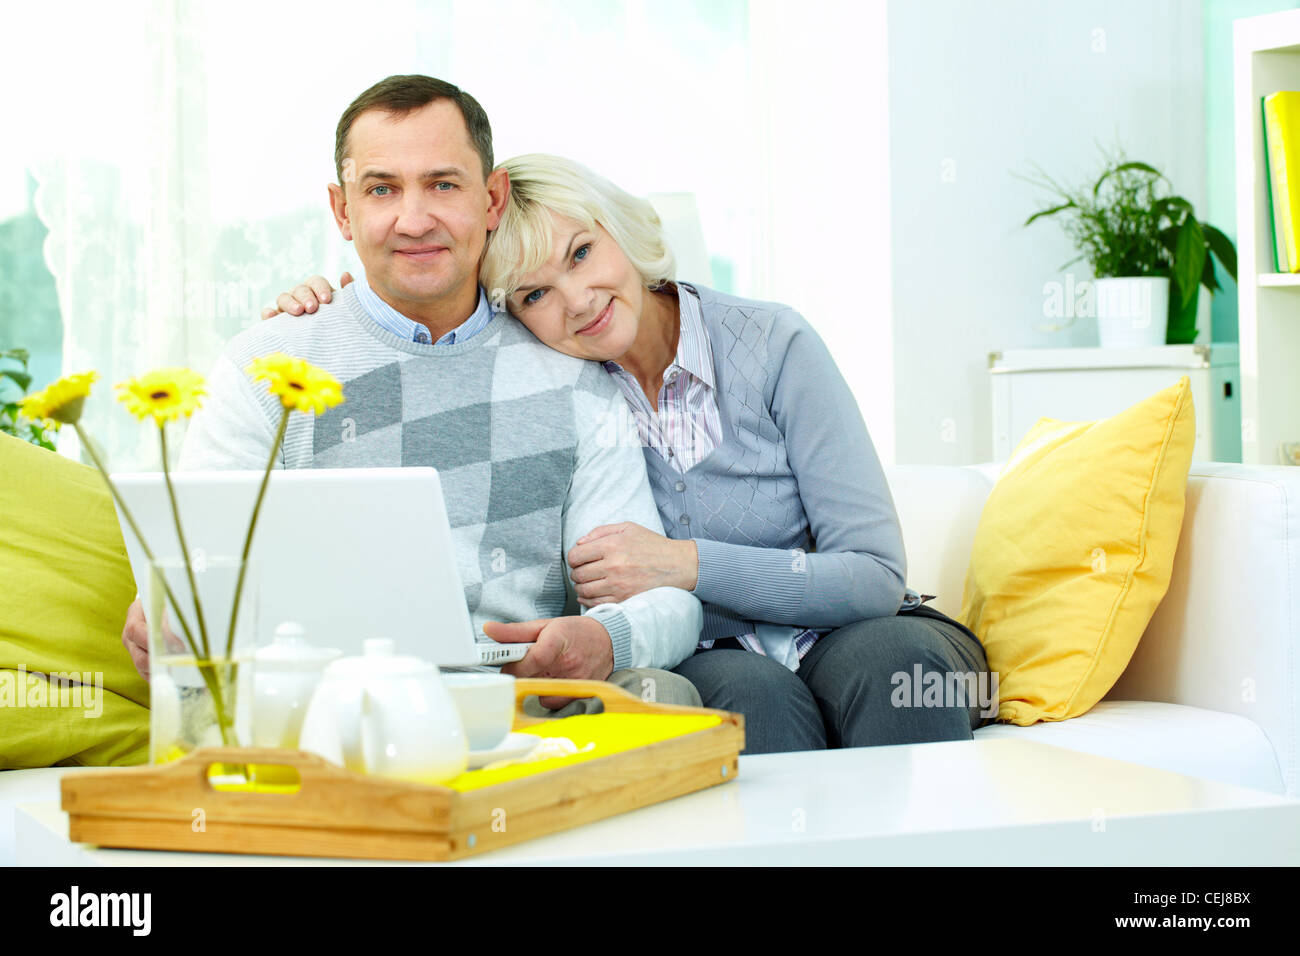 Portrait of affectionate senior couple looking at camera and smiling - Stock Image